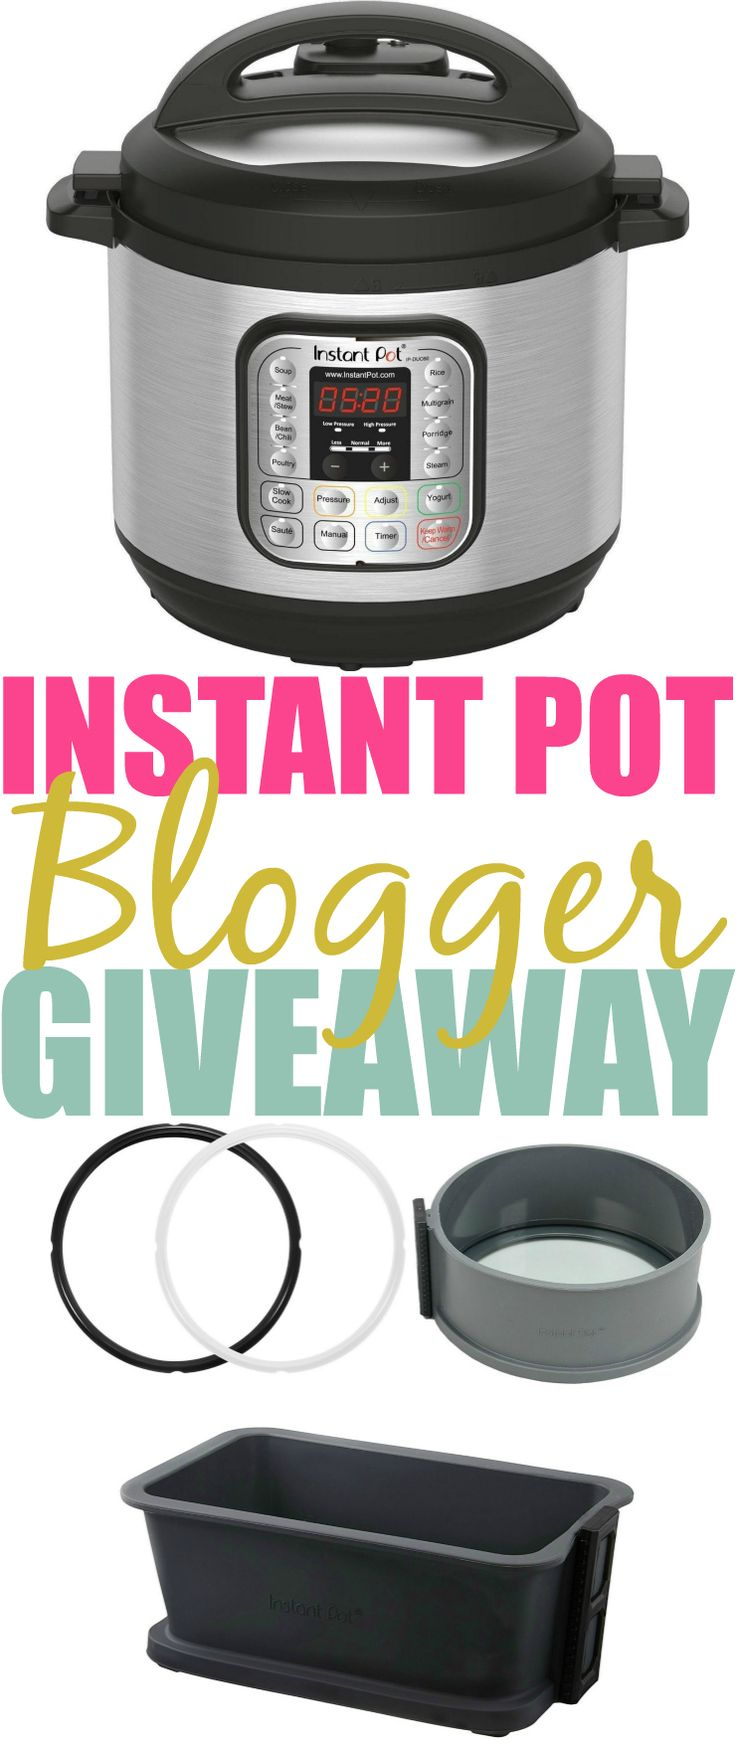 Have you tried this new kitchen trend?Enter to WIN an Instant Pot now. Open to US/CAN.